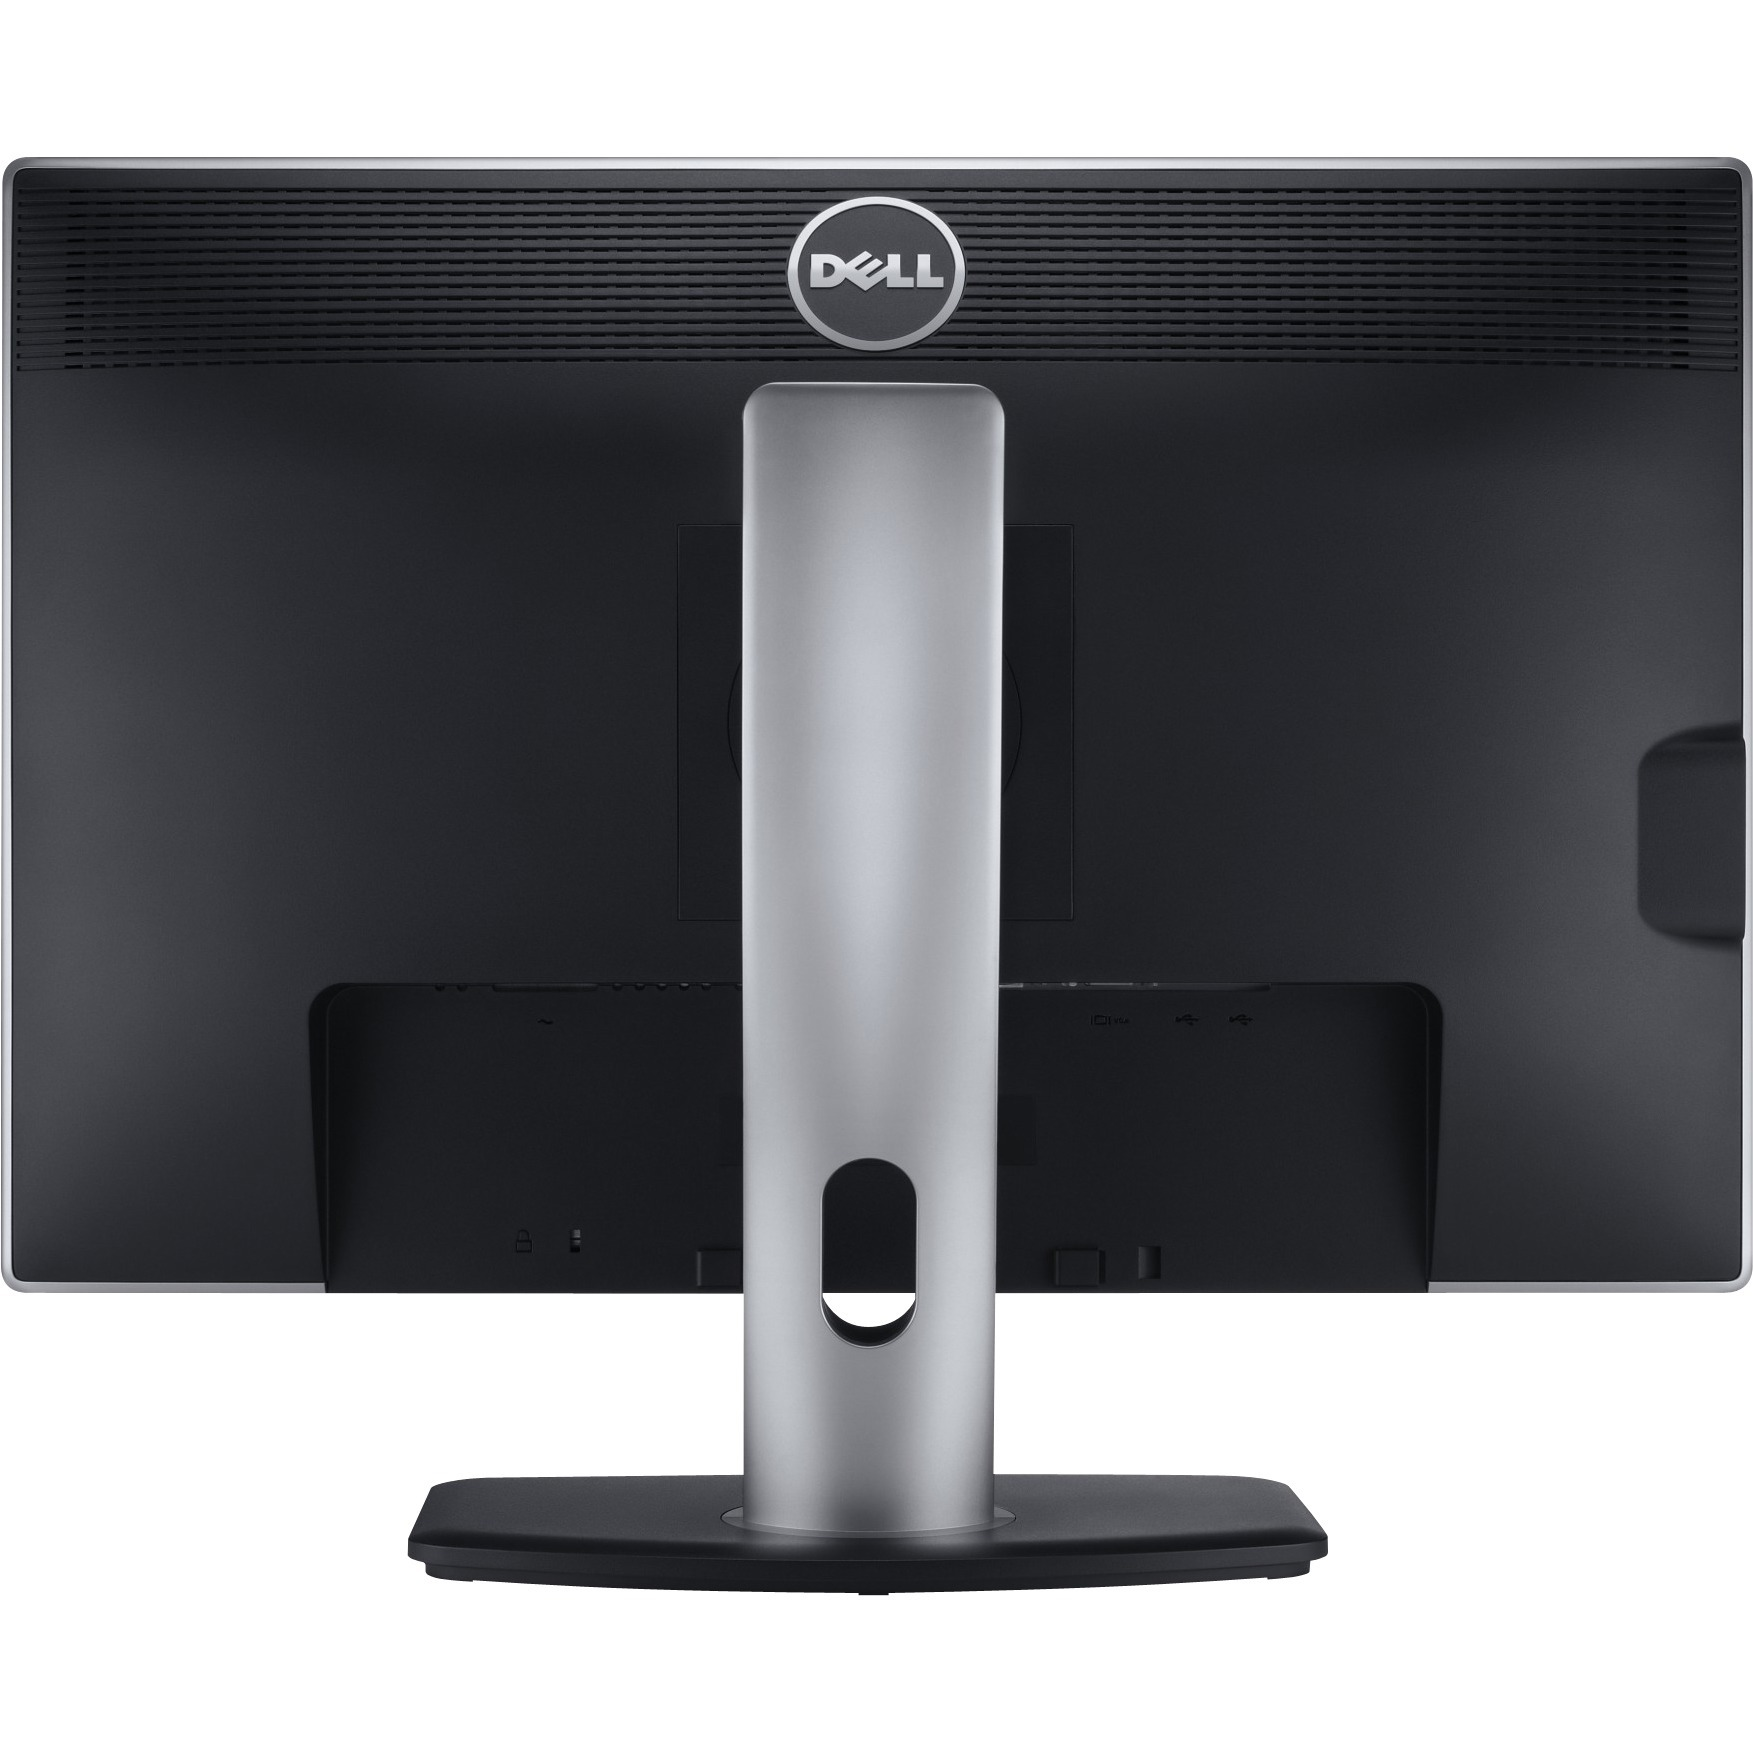 Dell UltraSharp U2412M 24inch Widescreen LED IPS Monitor Black